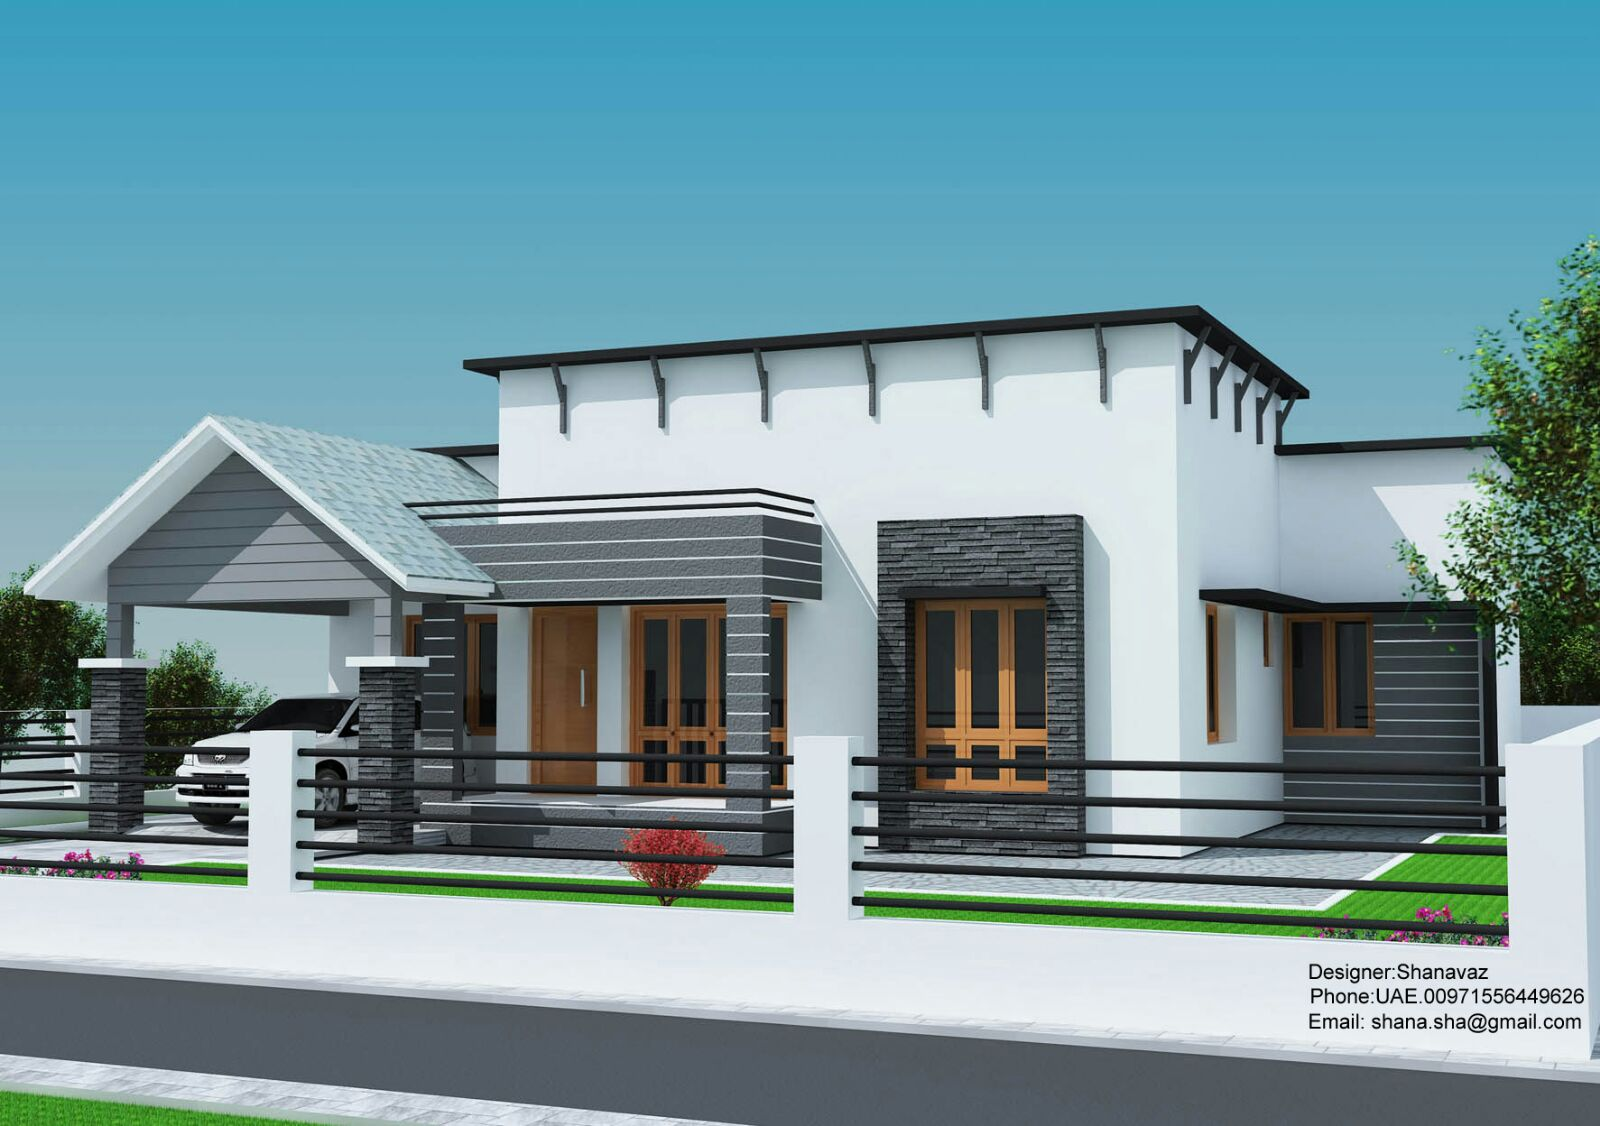 1300 sq ft single floor contemporary home design for Modern house design single floor